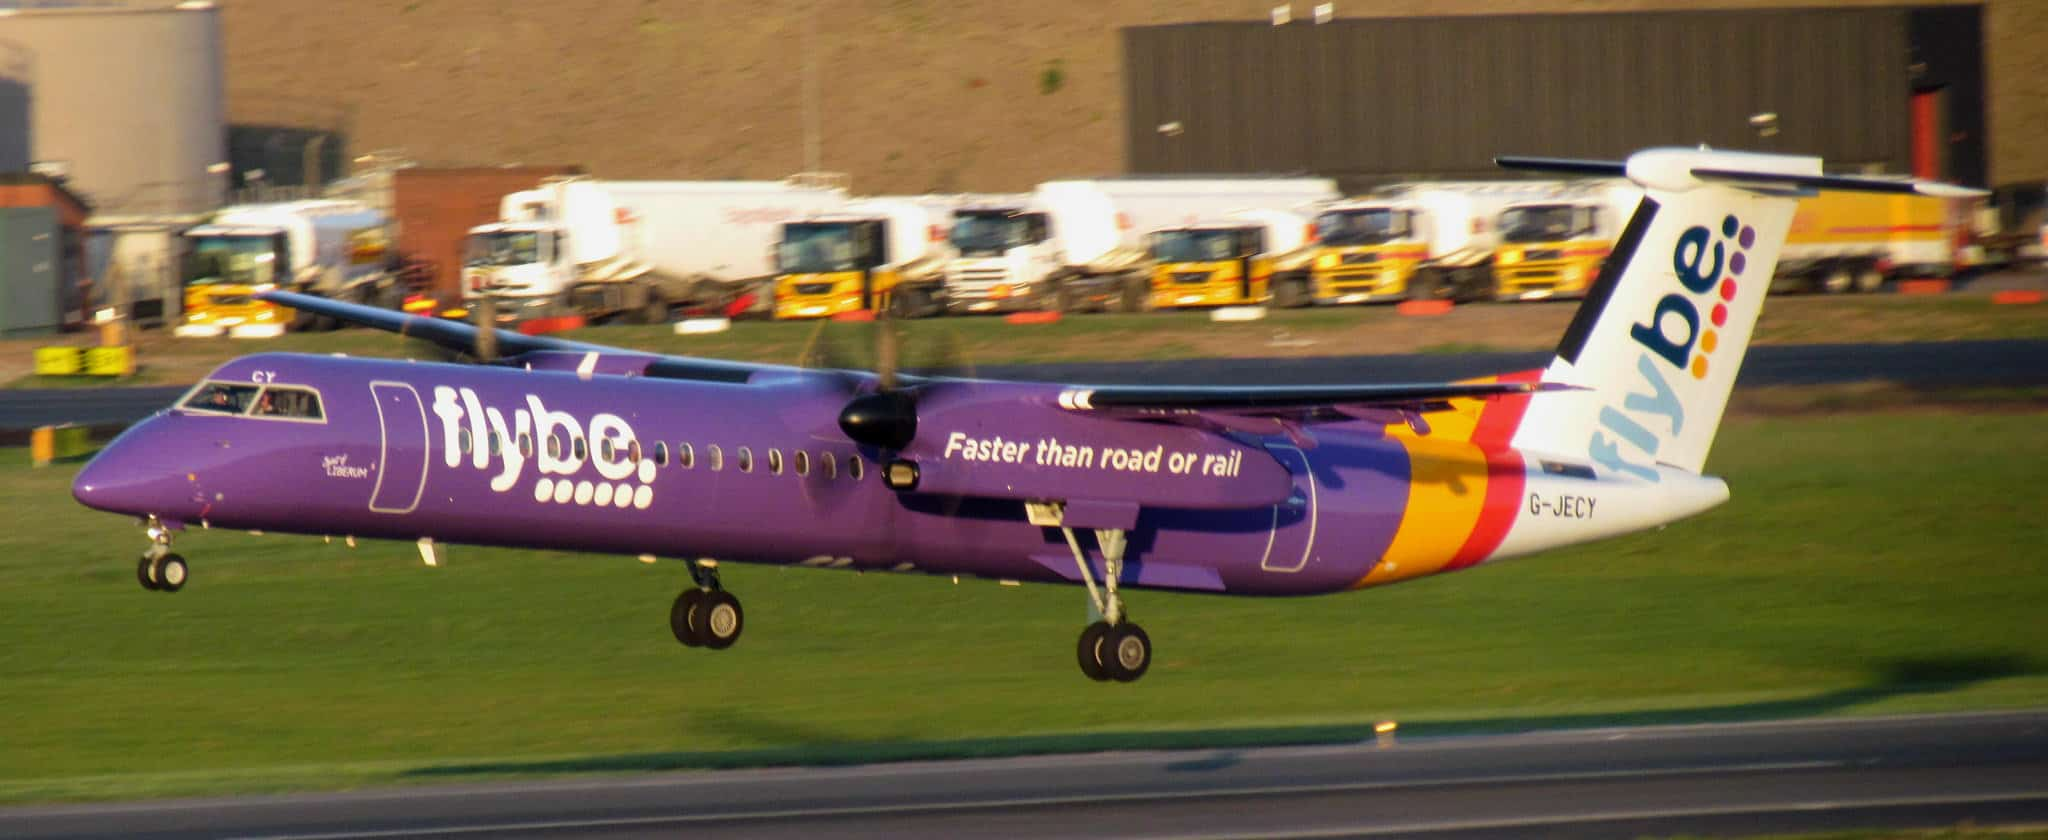 Flybe Cuts Prices Of 1 Million Seats By Up To 20% Across Peak Holiday Travel